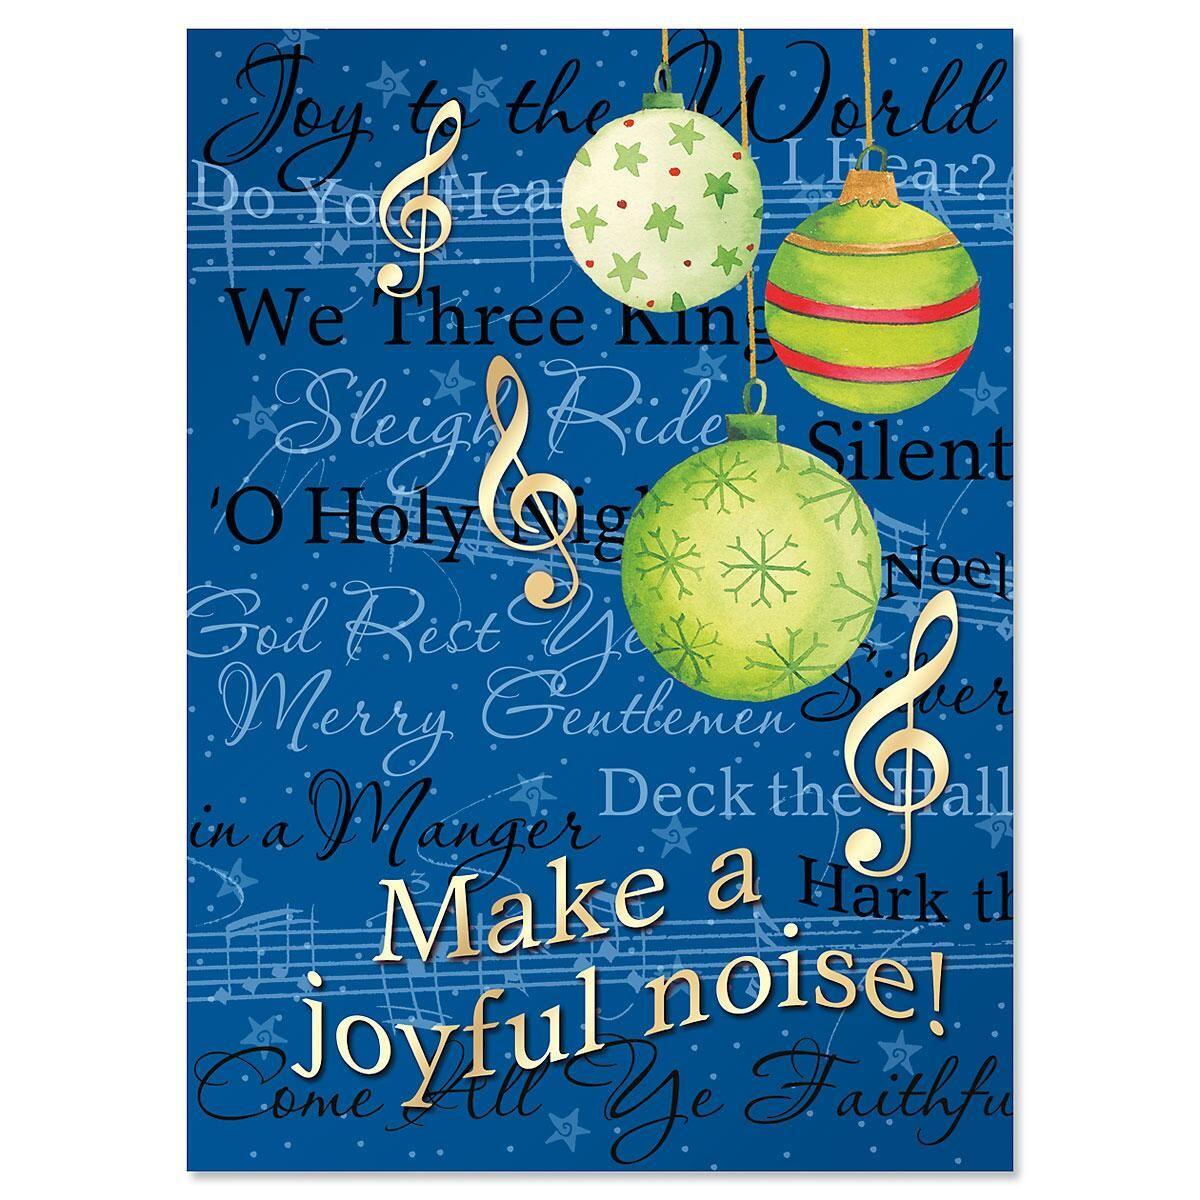 Songs of the Season Nonpersonalized Christmas Cards - Set of 18